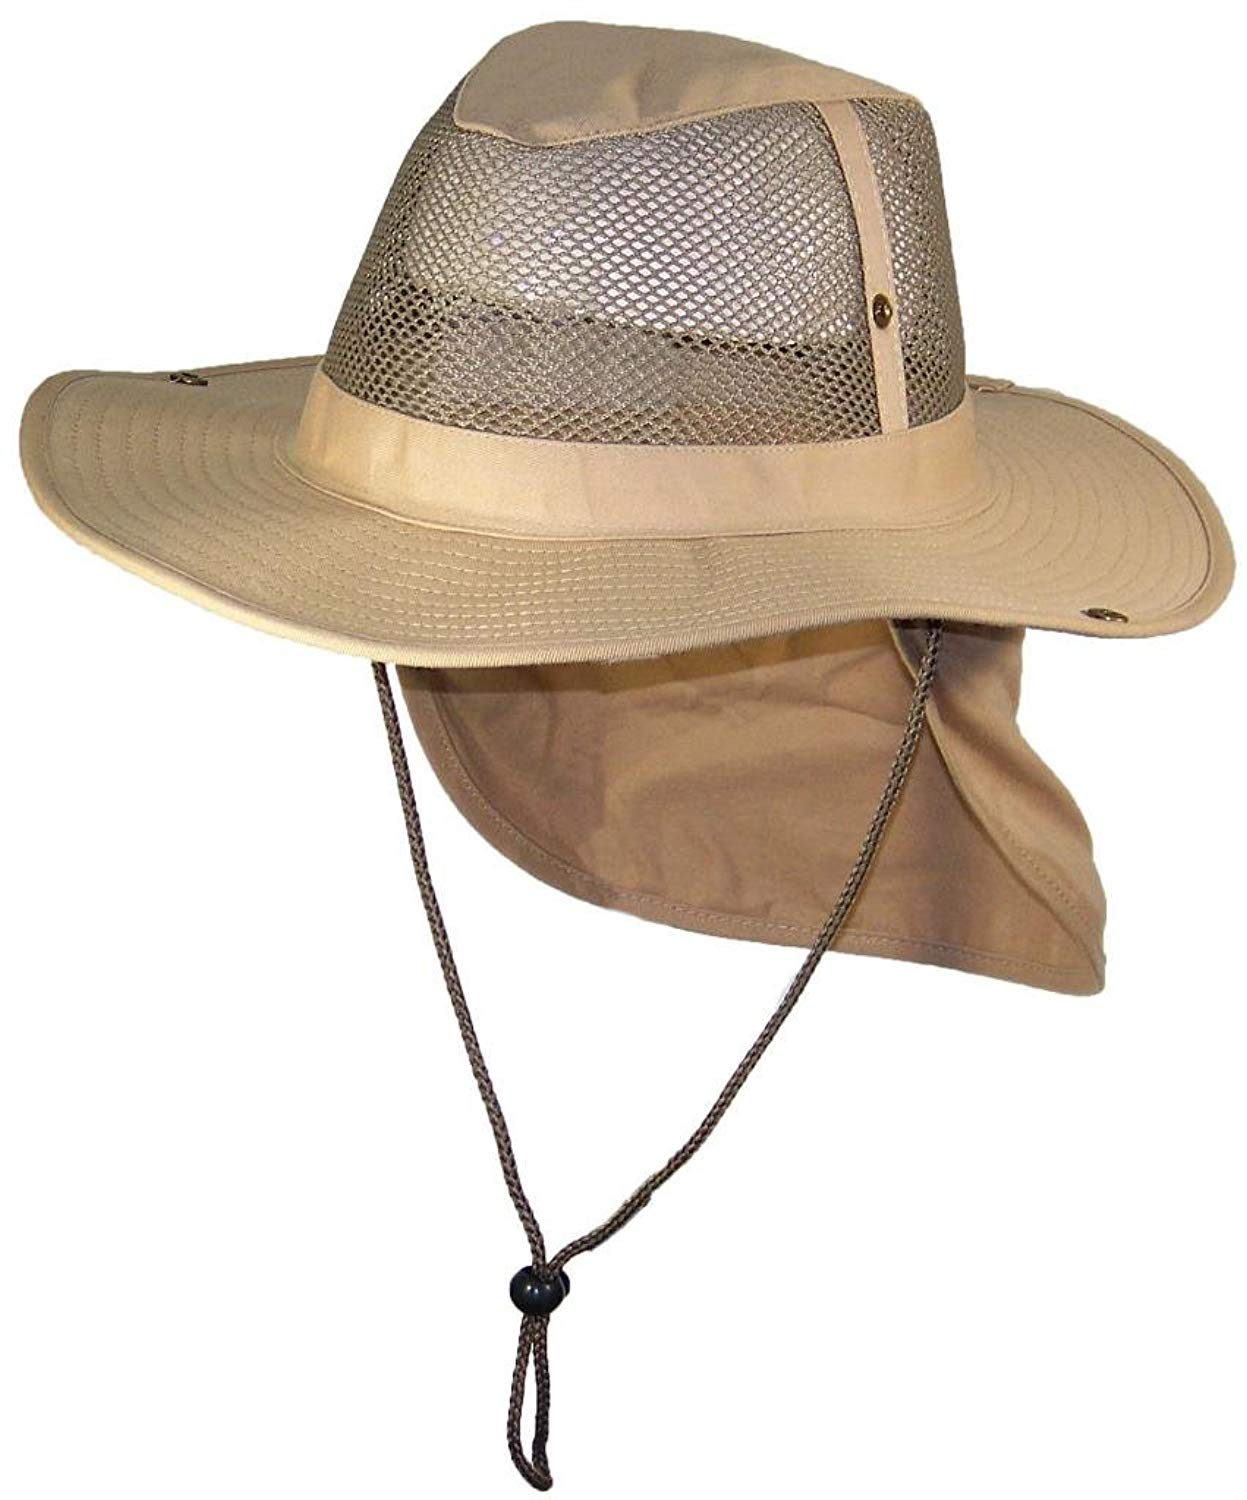 Get Quotations · Tropic Hats Summer Wide Brim Mesh Safari Outback W Neck  Flap   Snap Up f08f0181a55f